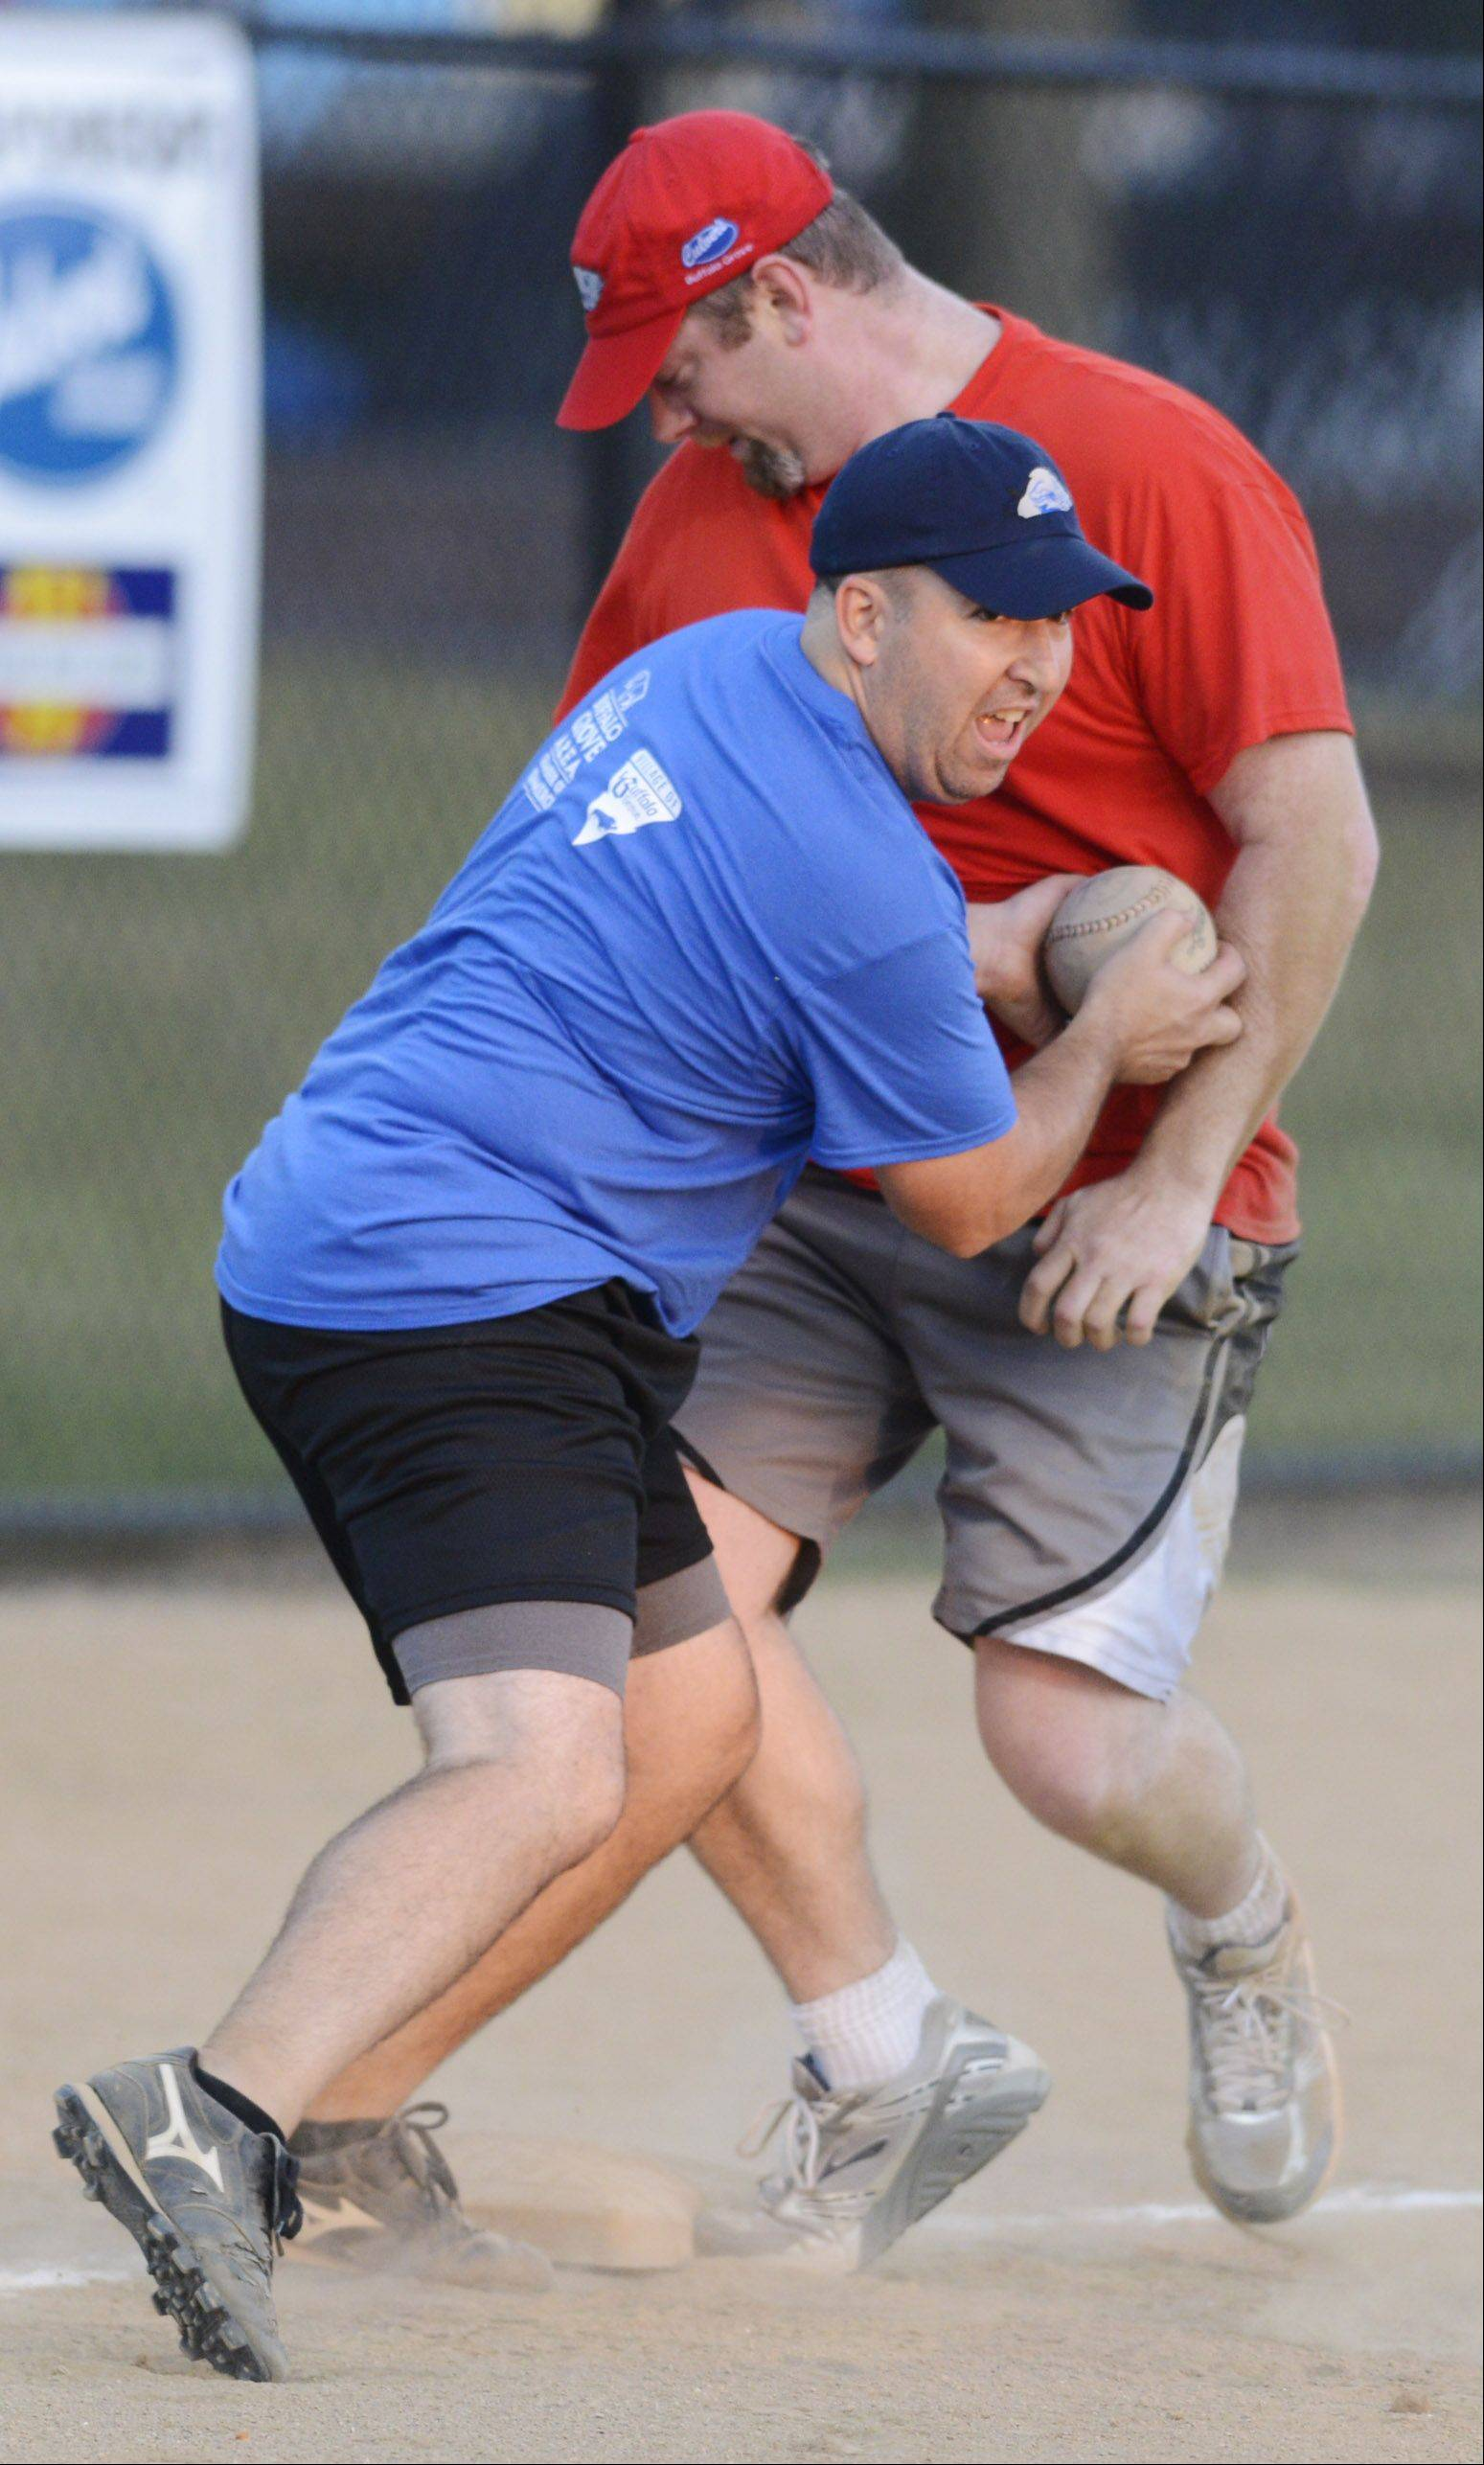 JOE LEWNARD/jlewnard@dailyherald.comGreg Ney, superintendent of recreation for the Buffalo Grove Park District, applies a late tag to Aaron Rochholz of PNC Bank at third base during Wednesday's annual charity softball game at Emmerich Park in Buffalo Grove.